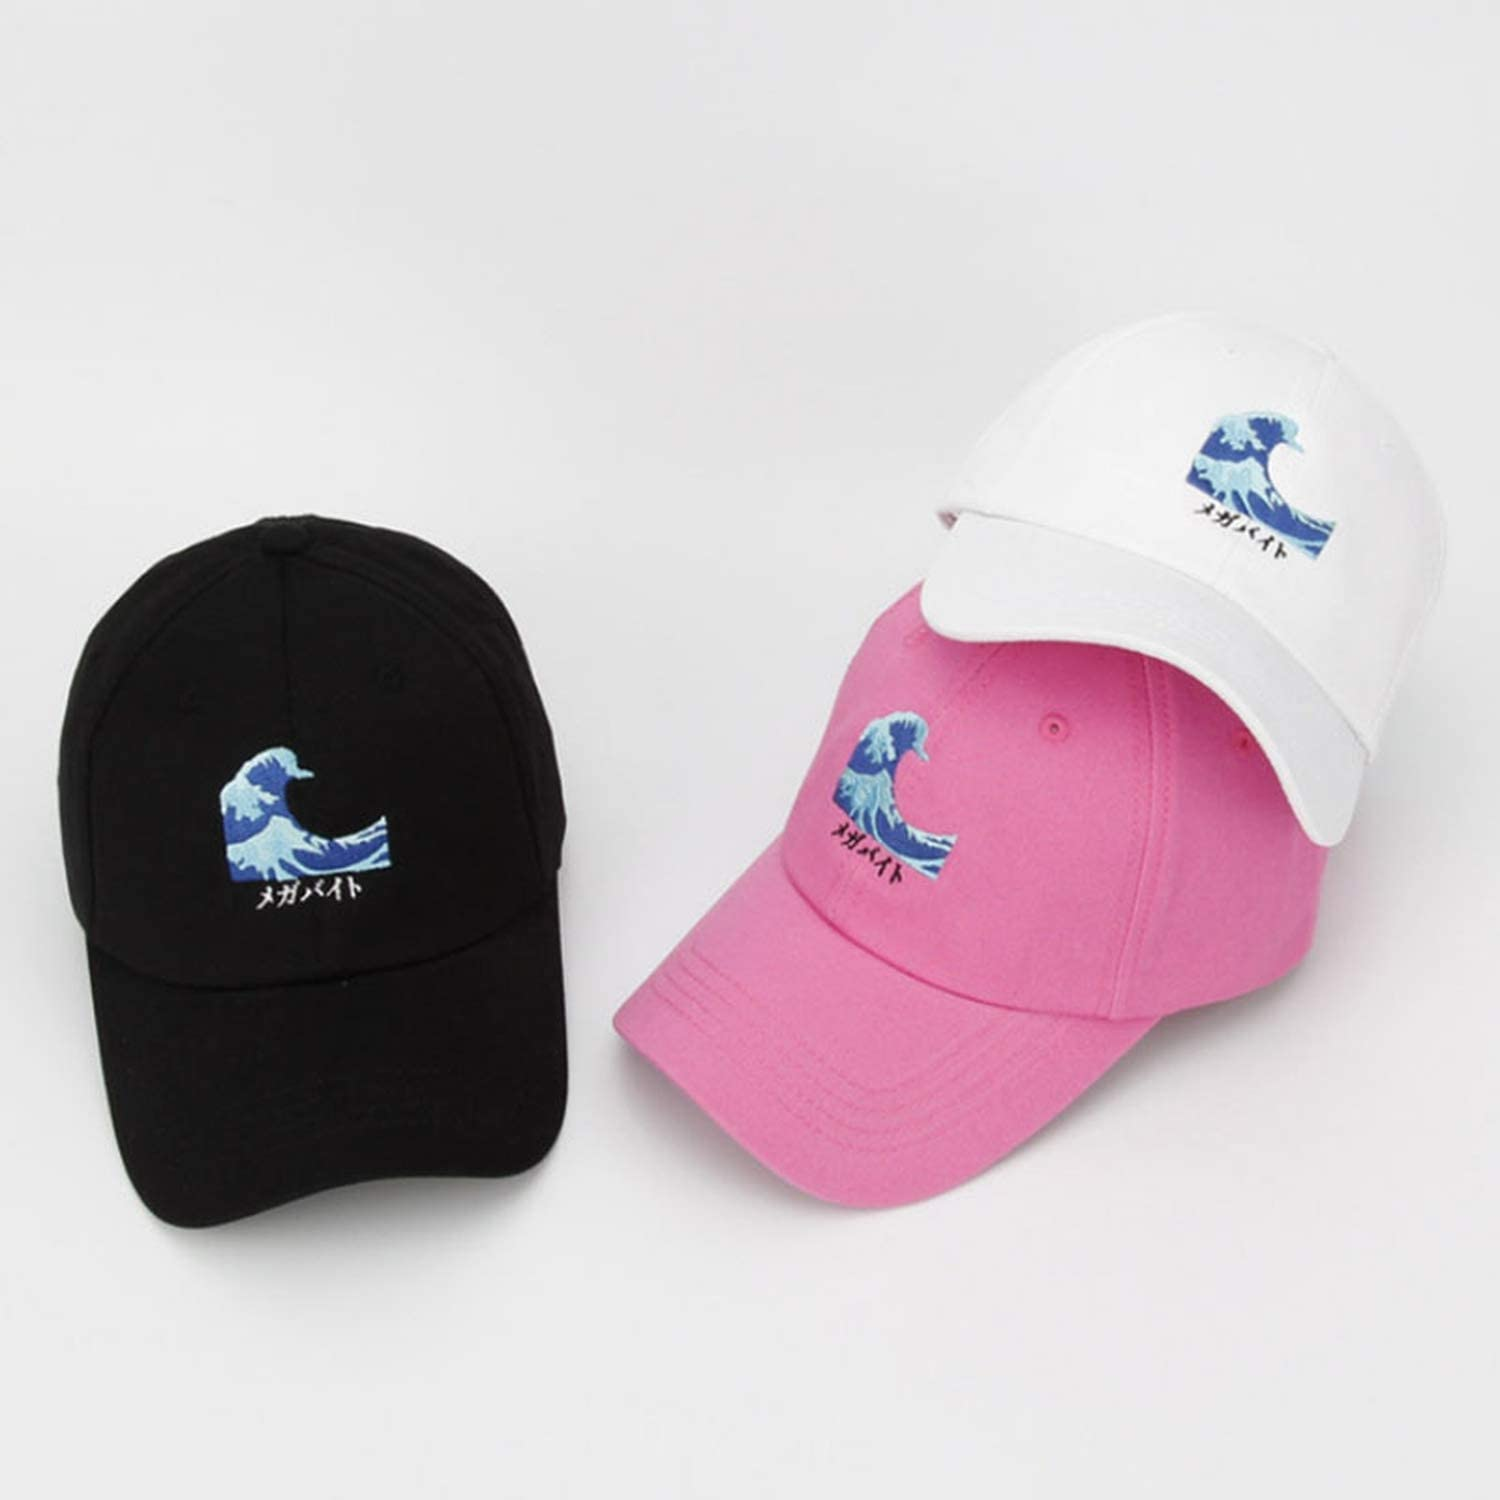 New Sea Wave Cotton Adjustable Embroidery Baseball Cap Baseball Hat Men and Women Dad Hat